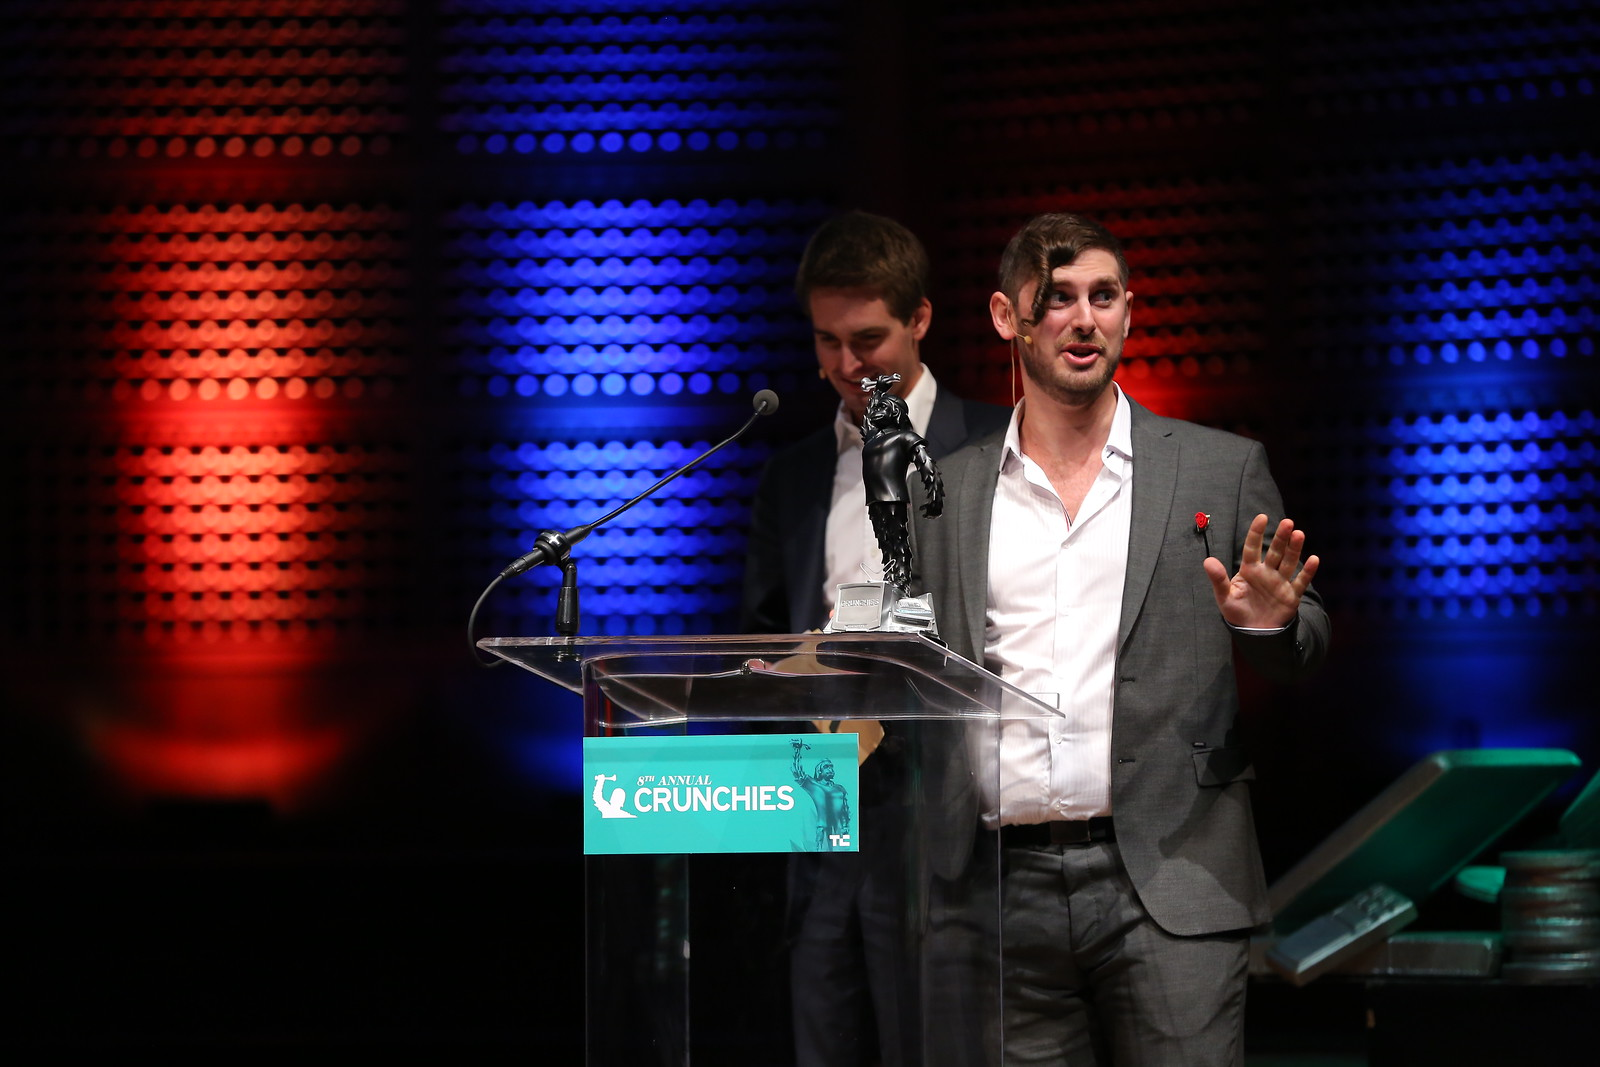 TechCrunch's Josh Constantine and SnapChat CEO Evan Spiegel present an award at the Crunchies.